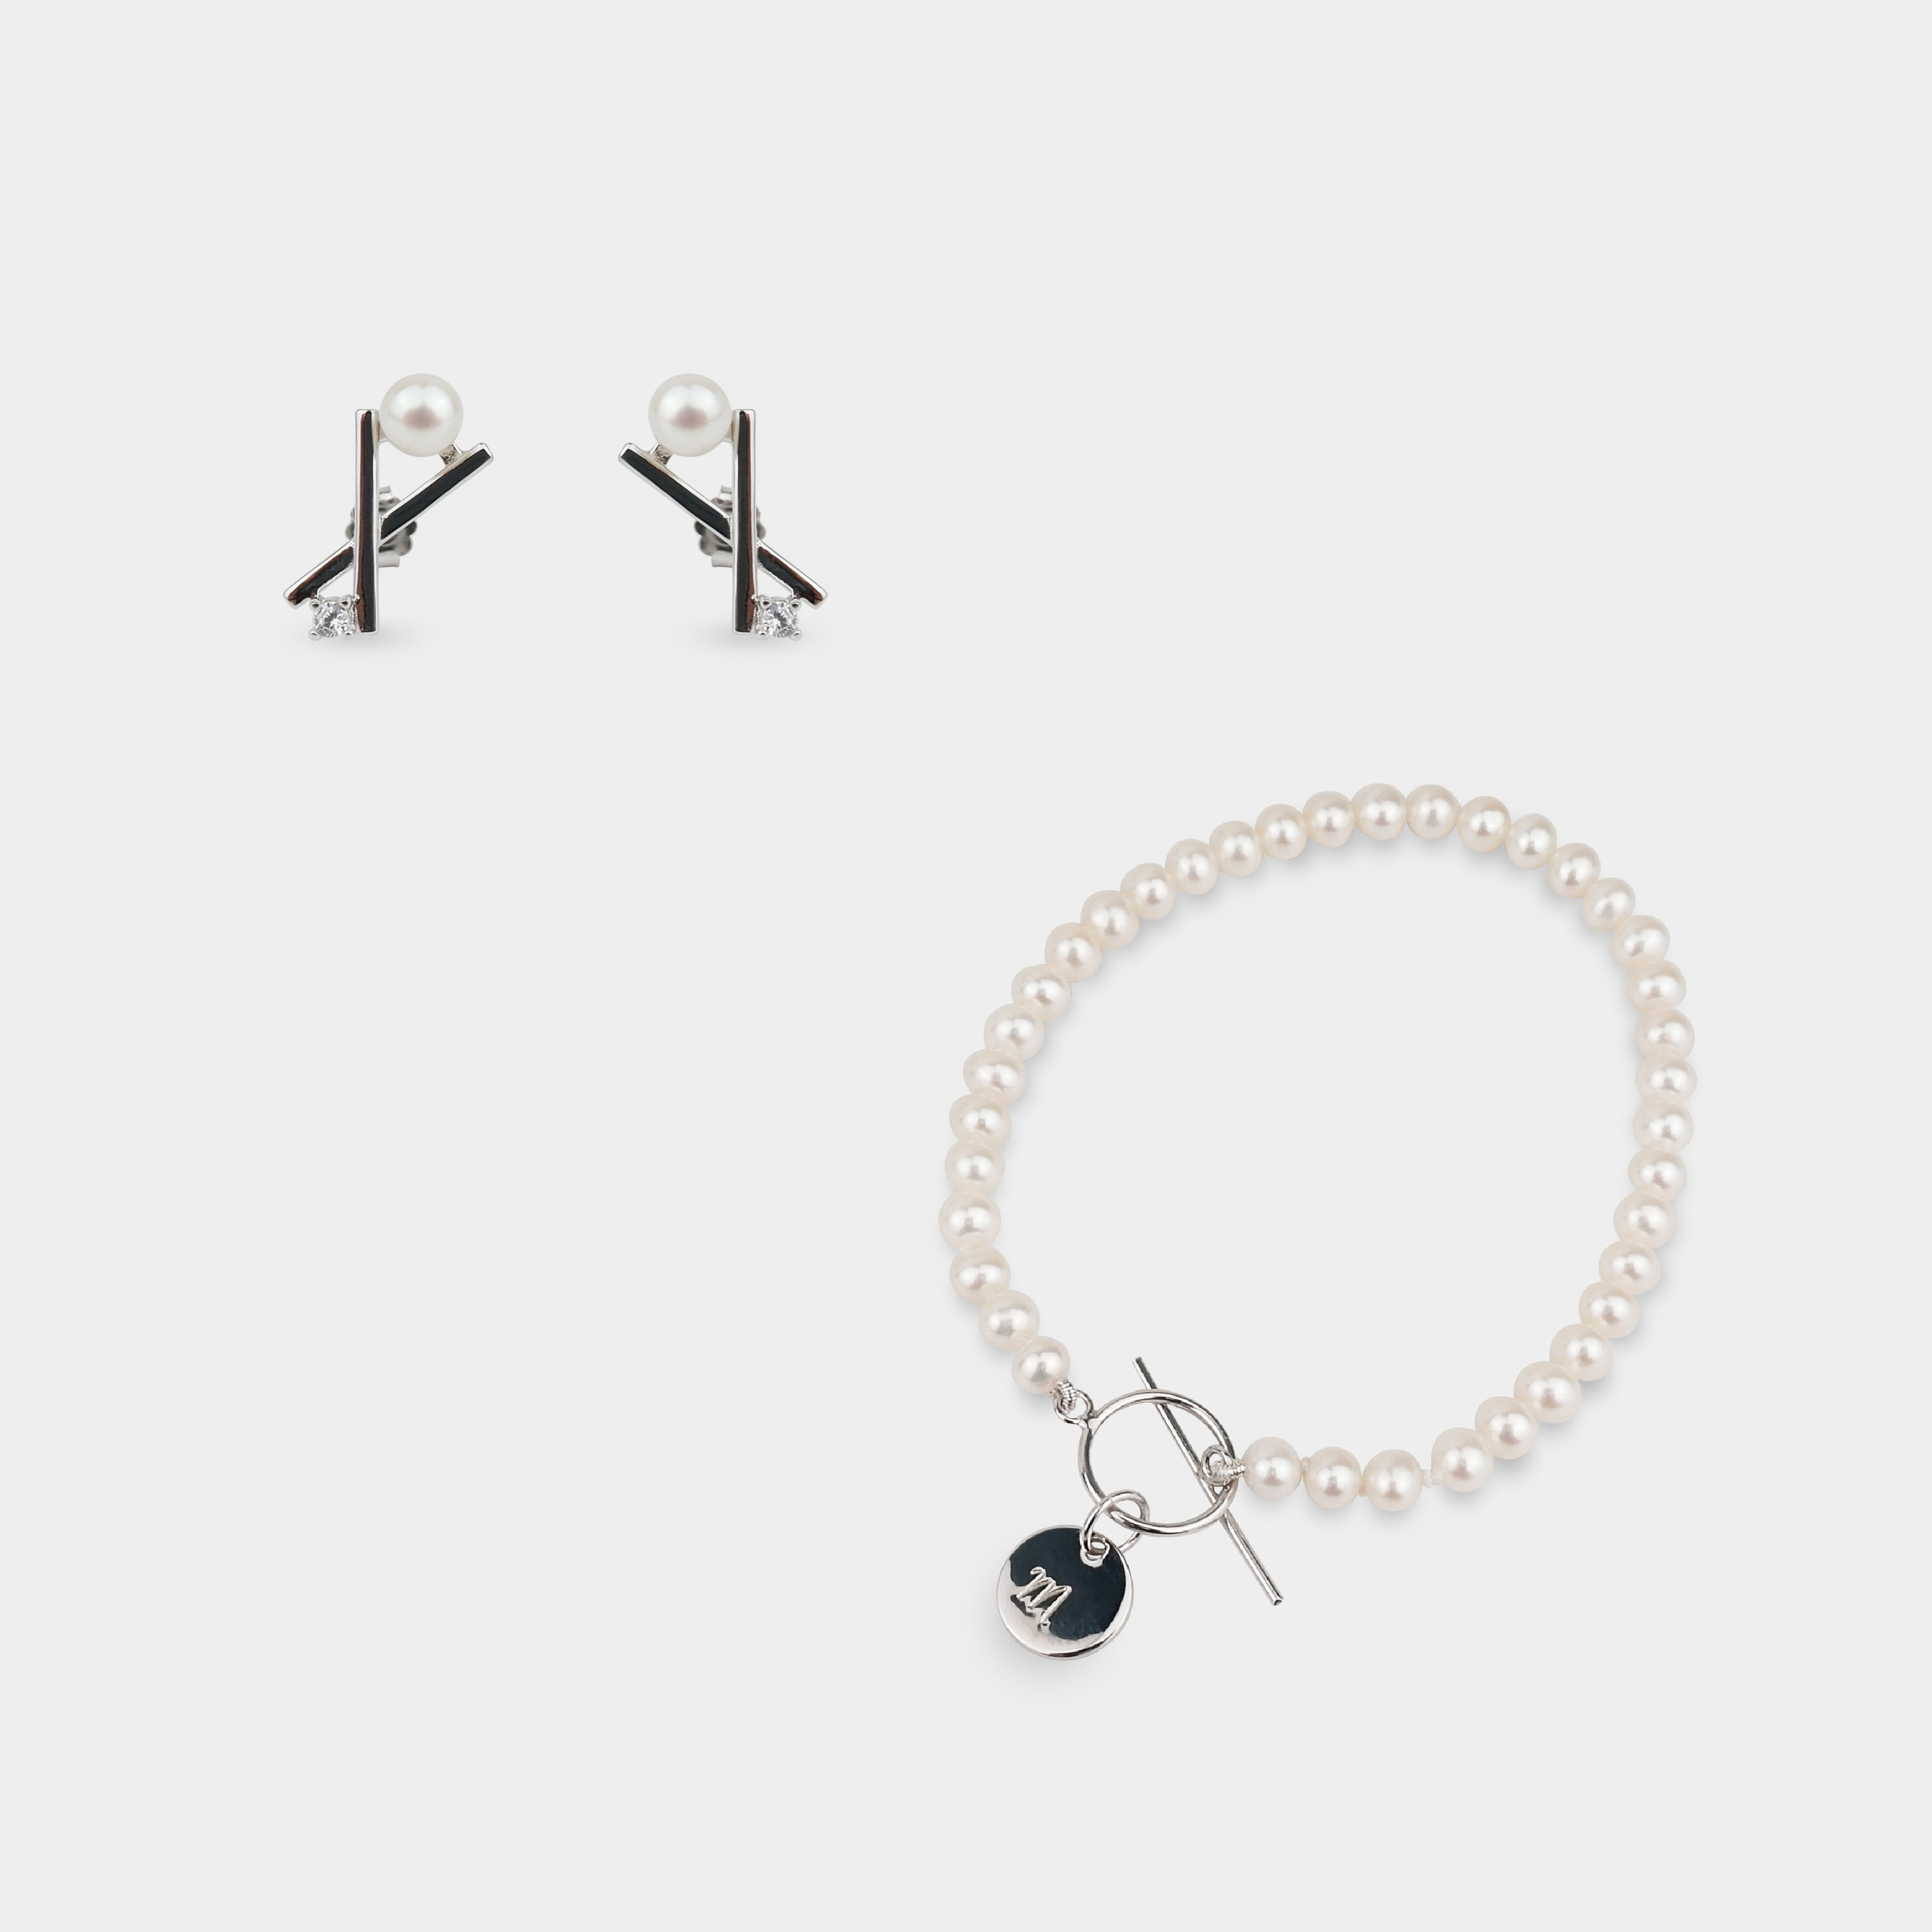 KAYLA PEARL EARRINGS + EXQUISITE INITIAL PEARL BRACELET